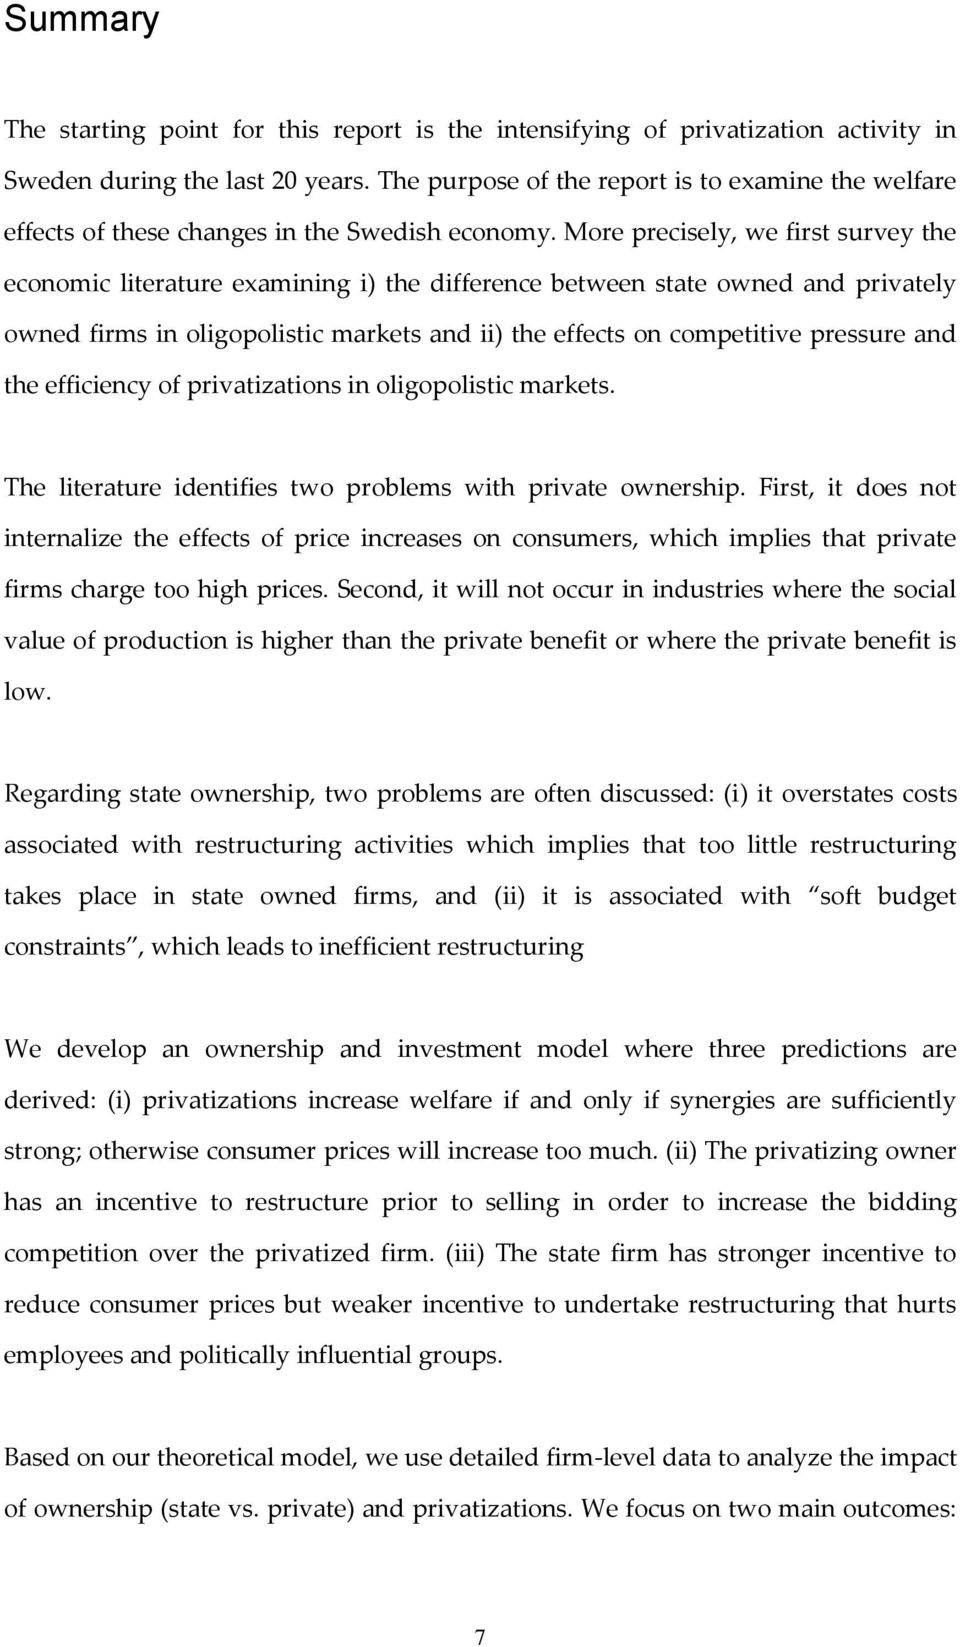 More precisely, we first survey the economic literature examining i) the difference between state owned and privately owned firms in oligopolistic markets and ii) the effects on competitive pressure